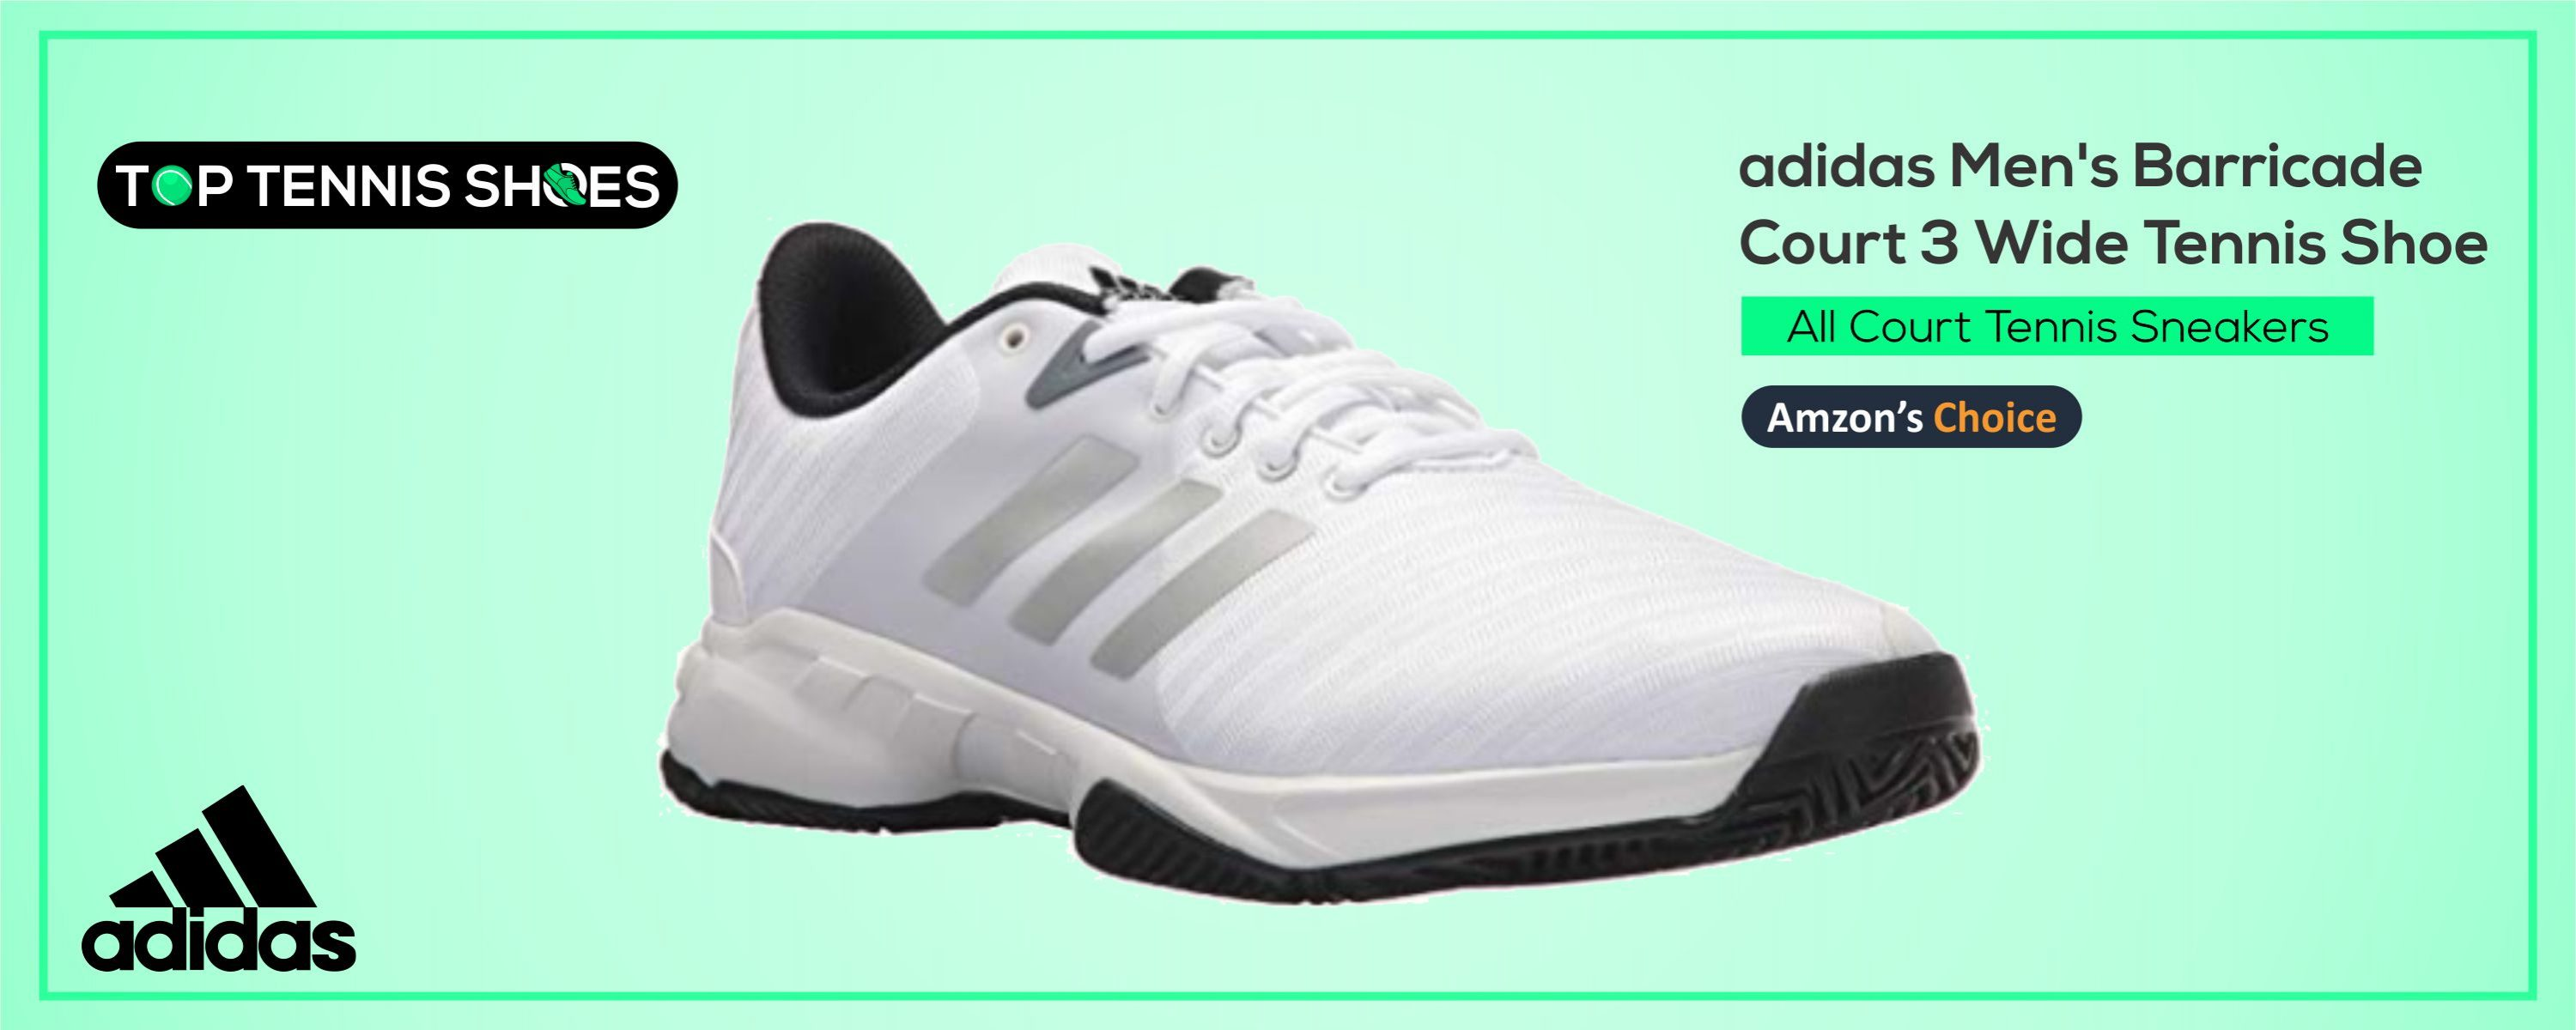 All Court Tennis Sneakers